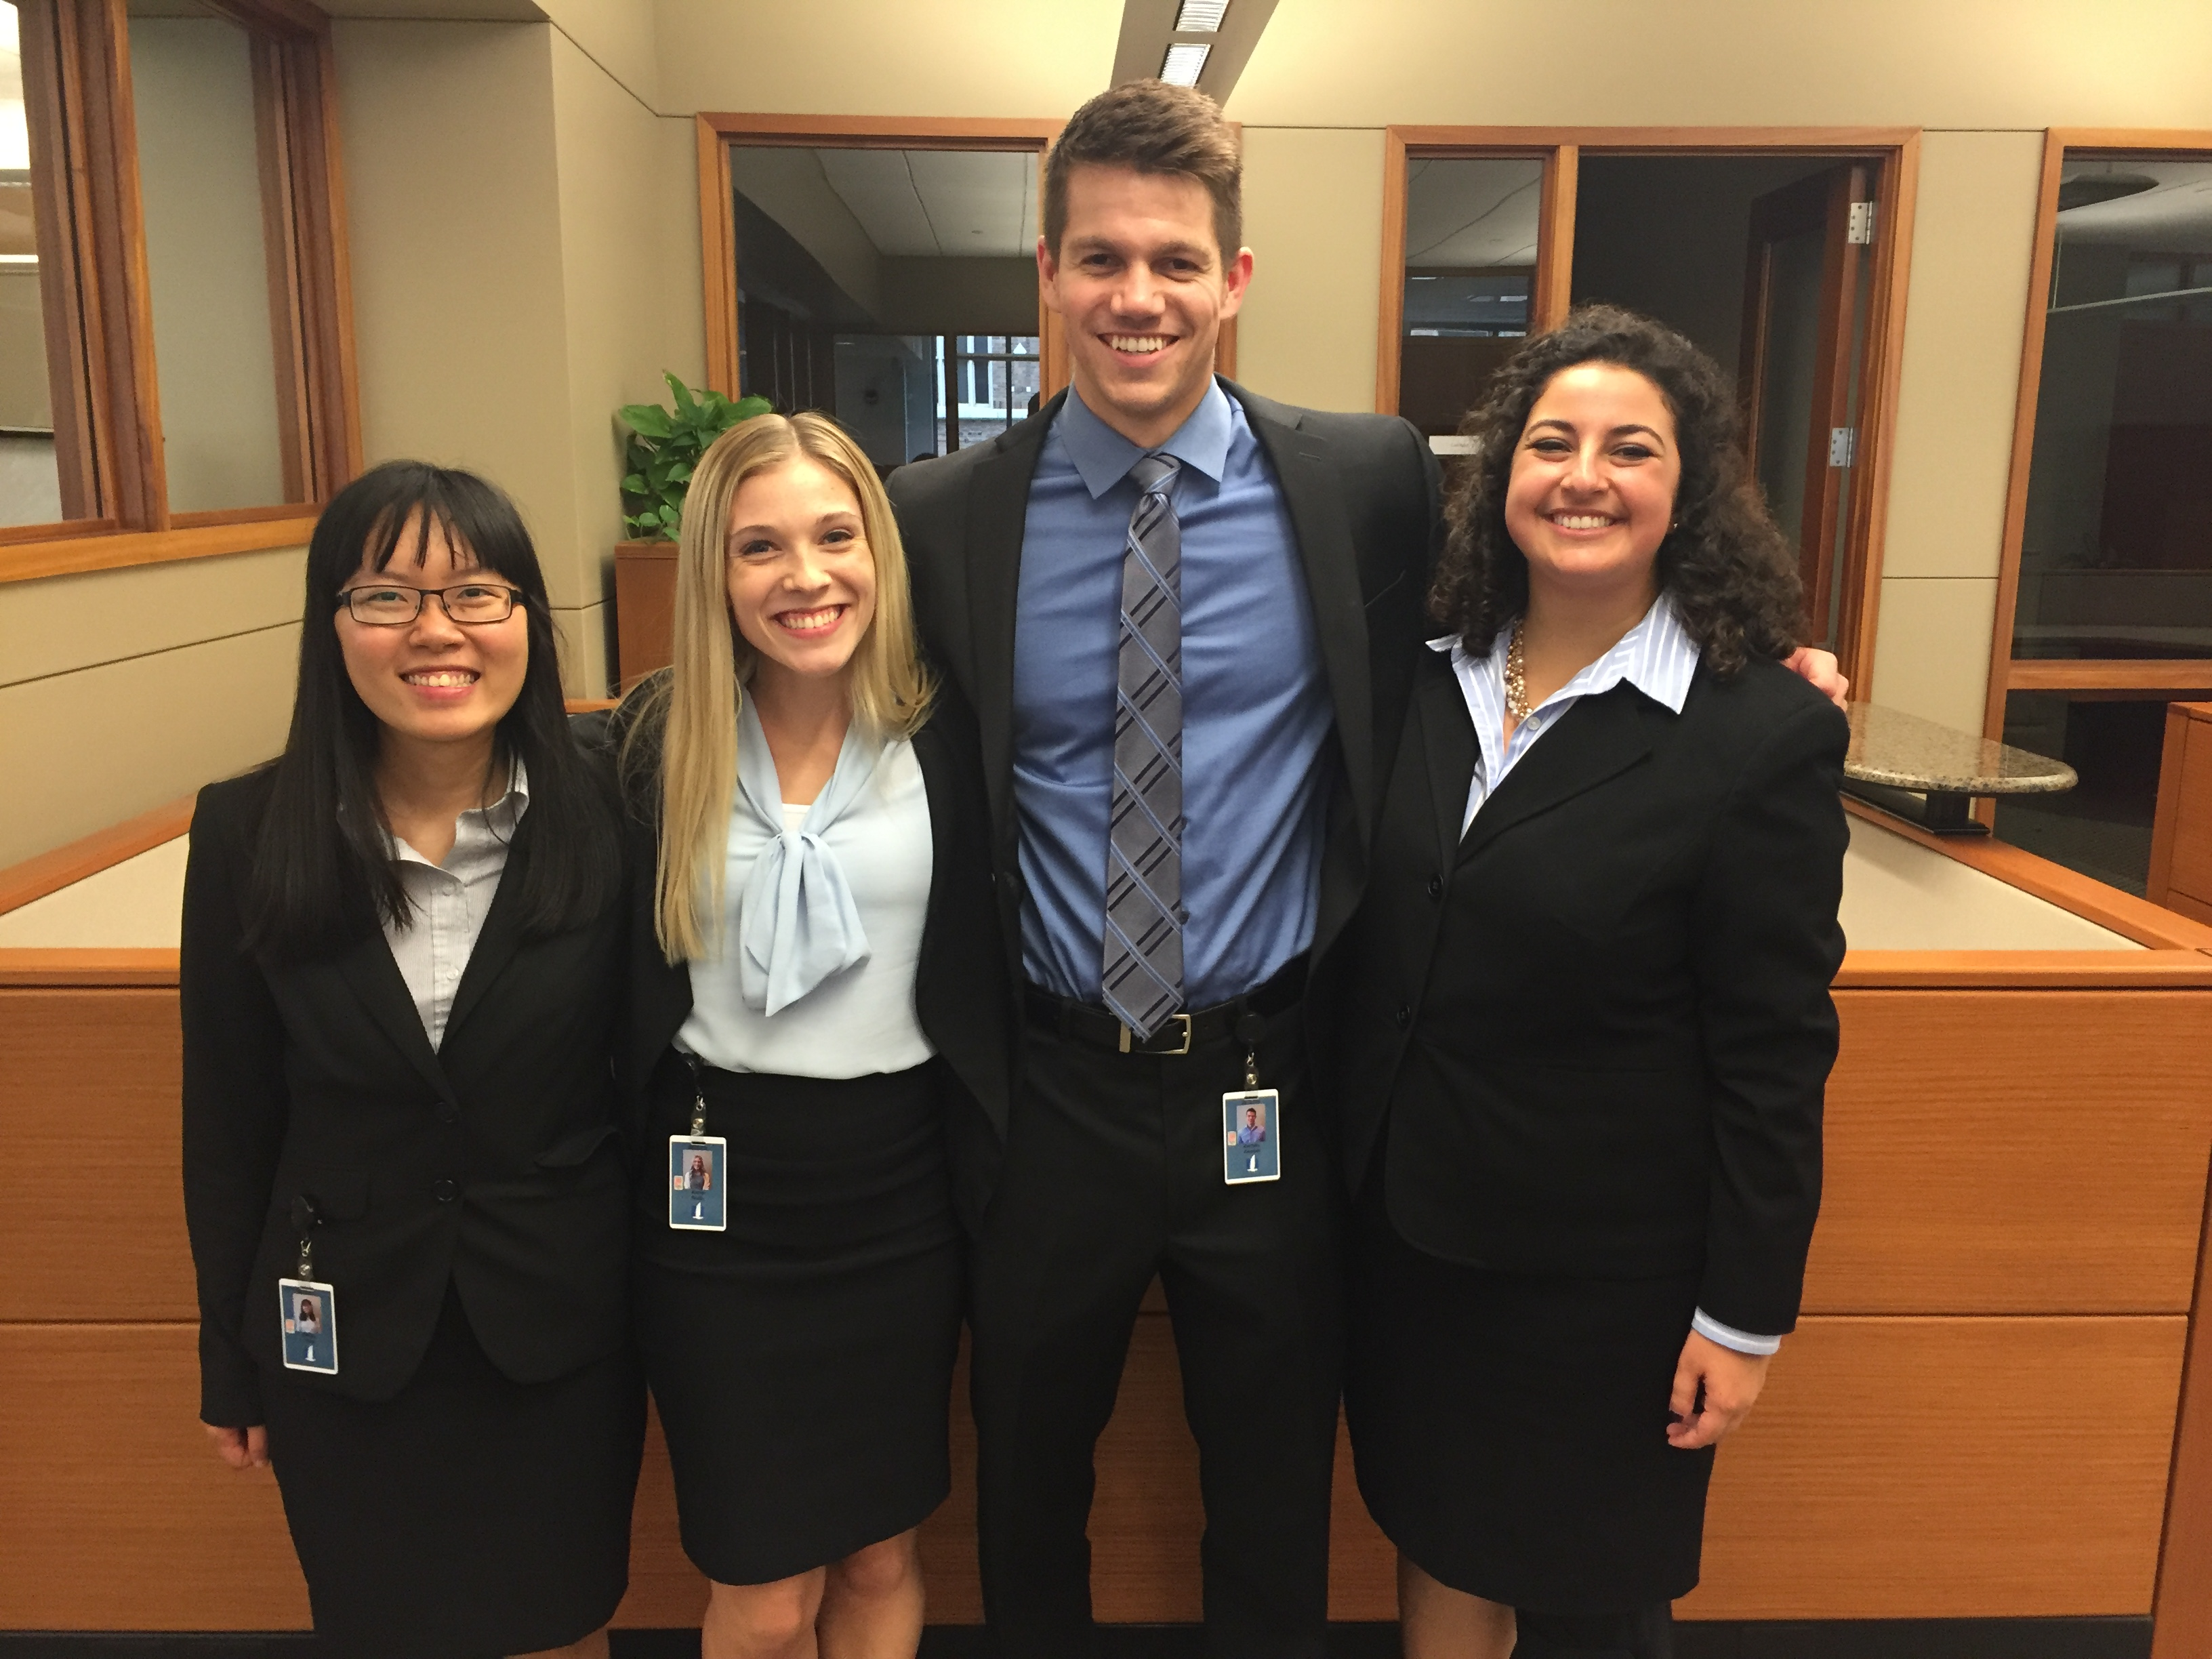 Aimee (second from left) poses with fellow interns at Nationwide Insurance.